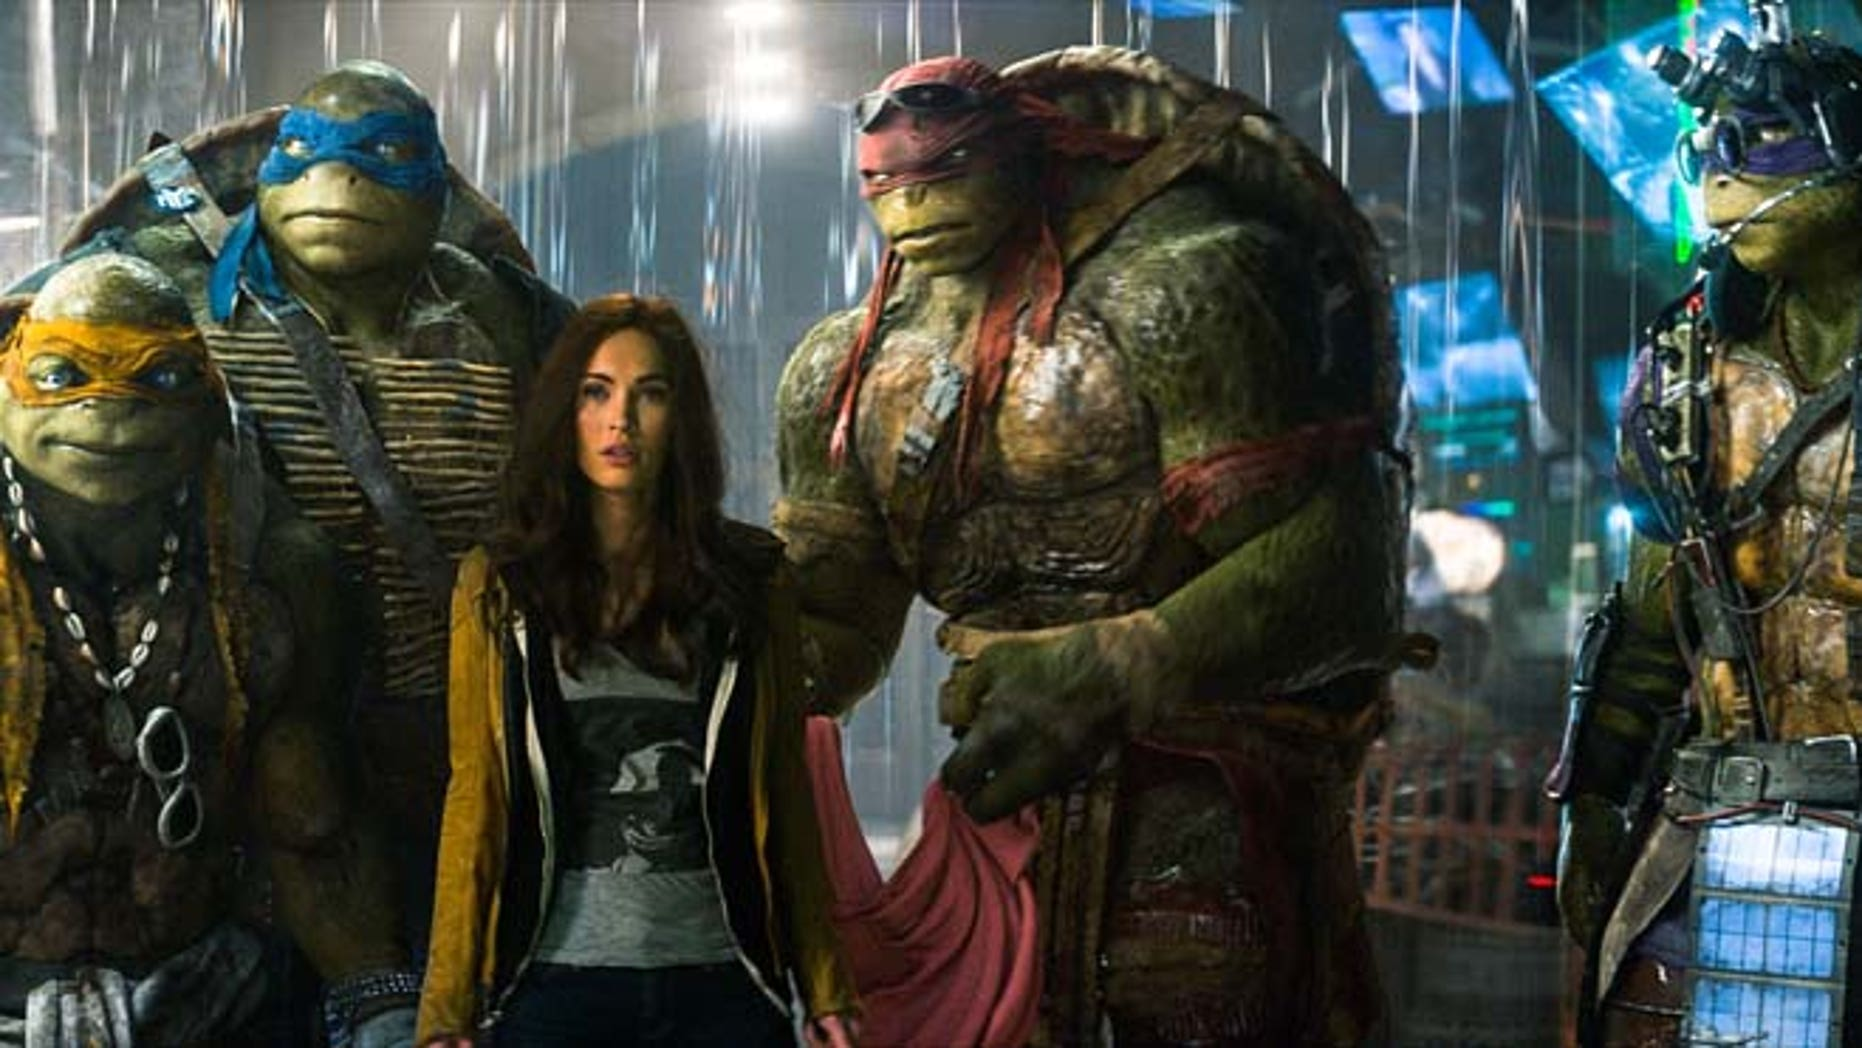 """This image shows, from left, Michelangelo, Leonardo, Megan Fox, as April O'Neil, Raphael, and Donatello in a scene from """"Teenage Mutant Ninja Turtles."""" (AP/Paramount Pictures, Industrial Light & Magic)"""